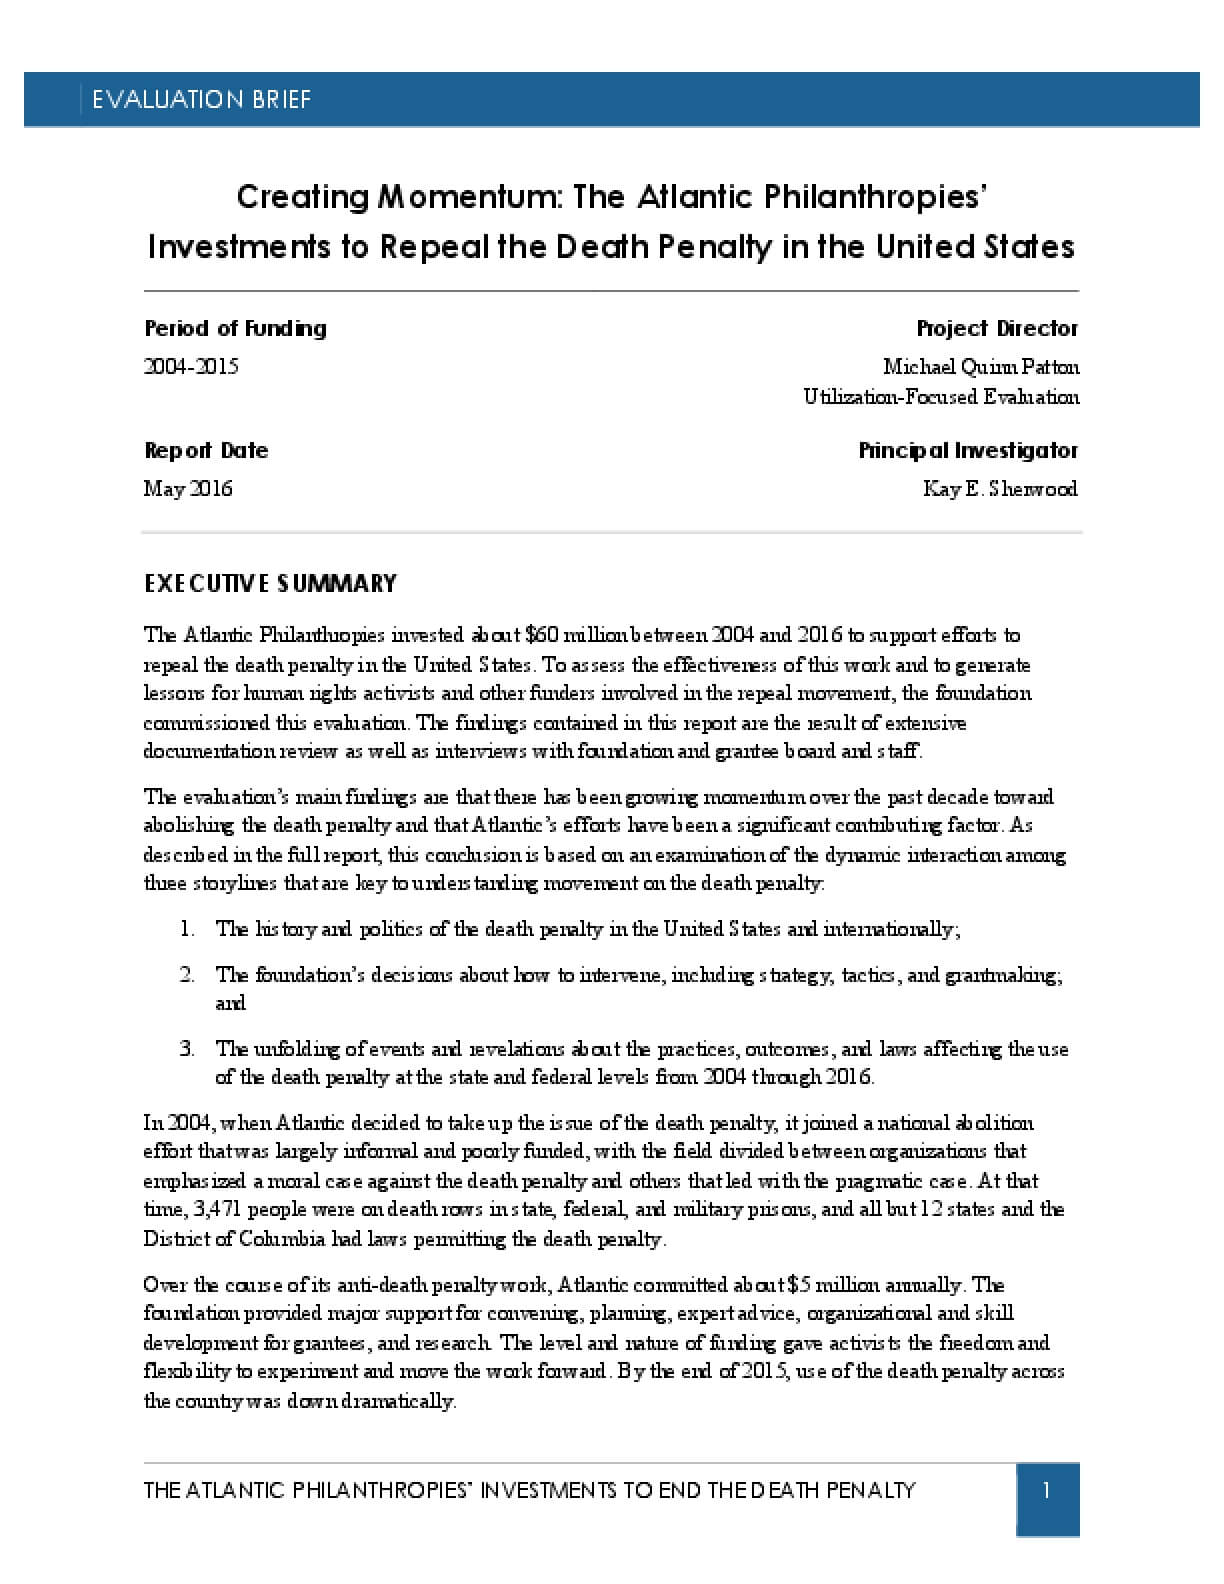 Creating Momentum: The Atlantic Philanthropies' Investments to Repeal the Death Penalty in the United States